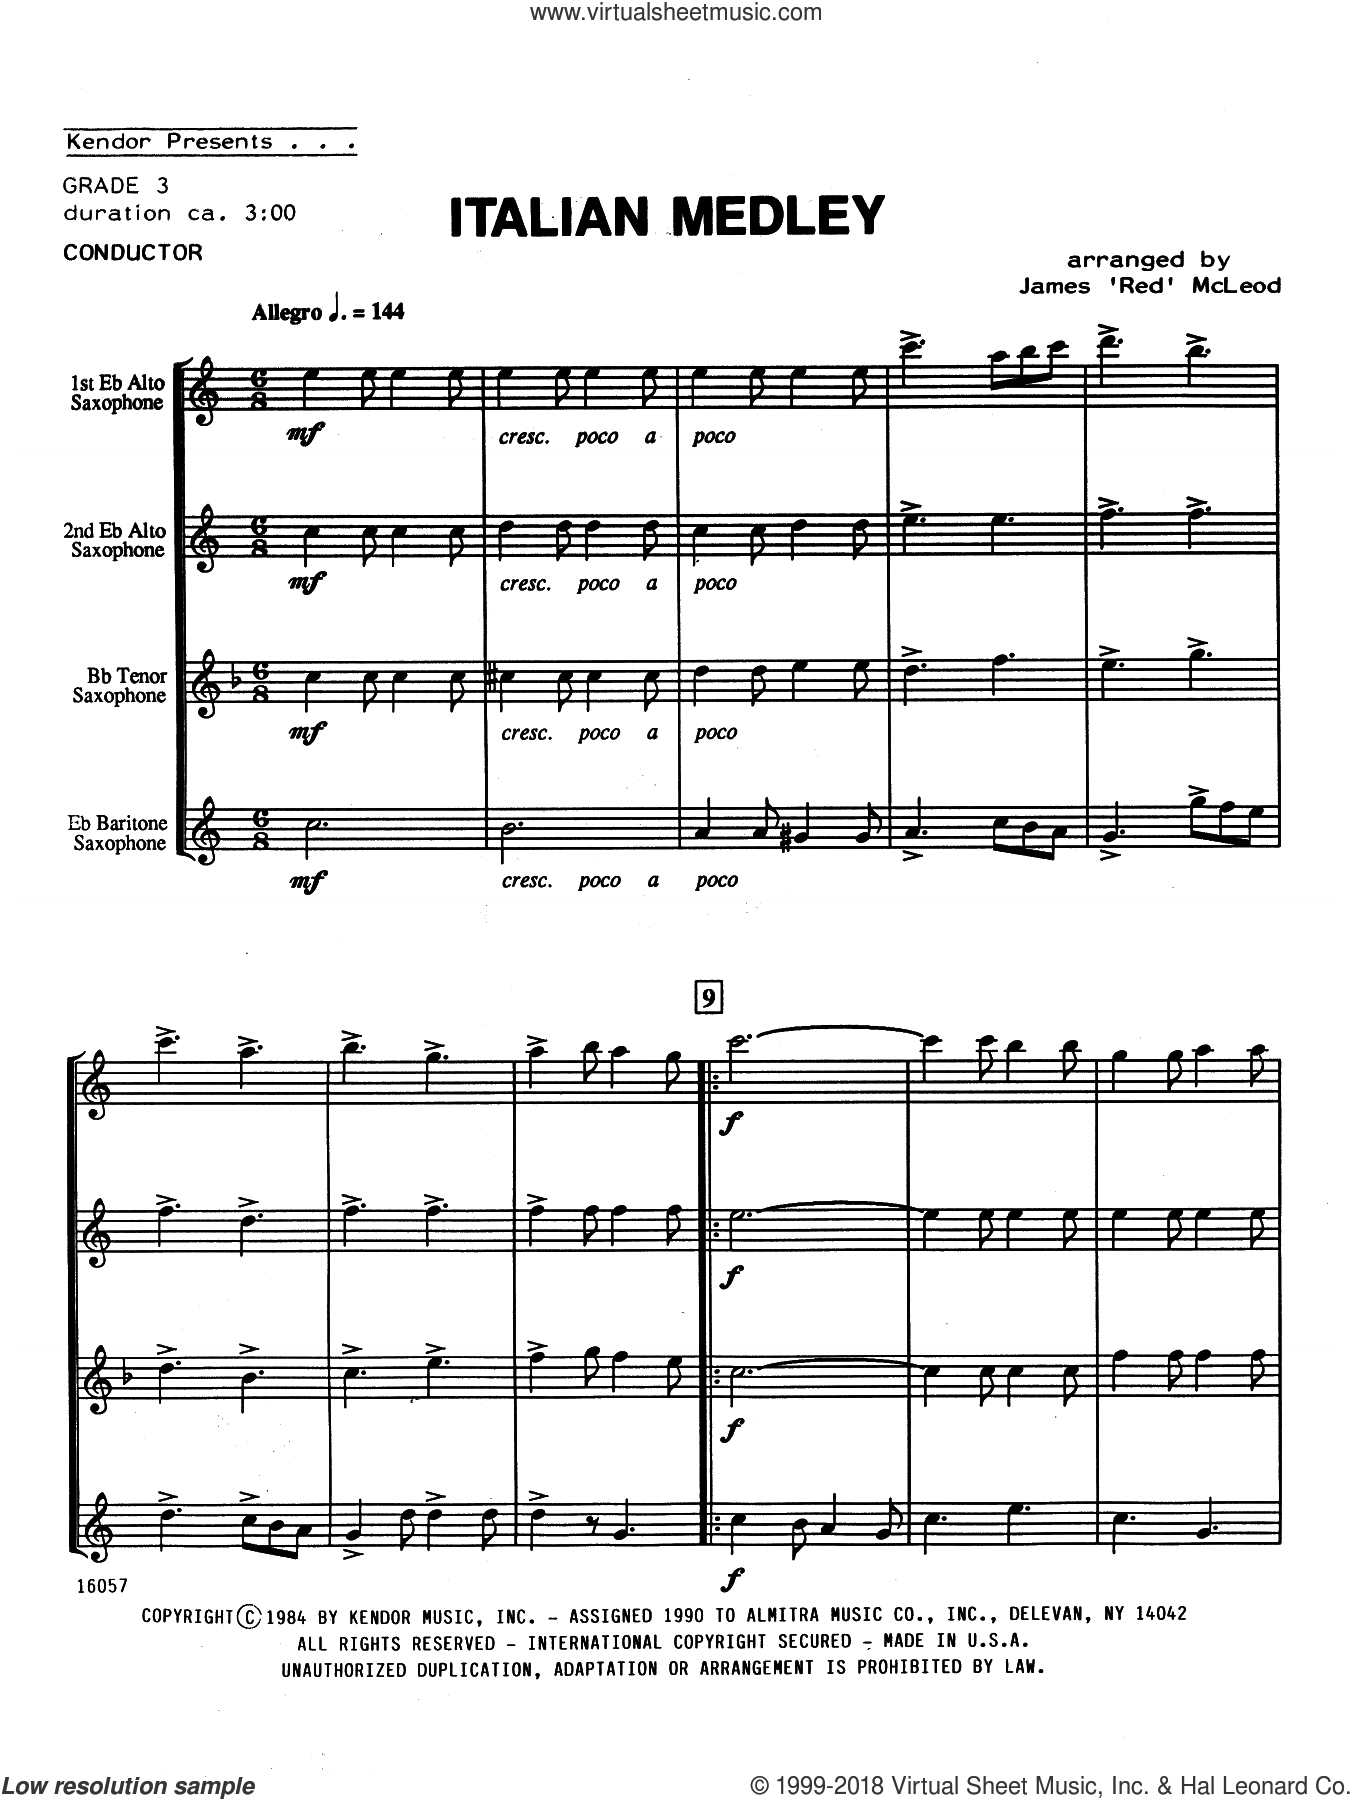 Italian Medley (COMPLETE) sheet music for saxophone quartet by James 'Red' McLeod, intermediate